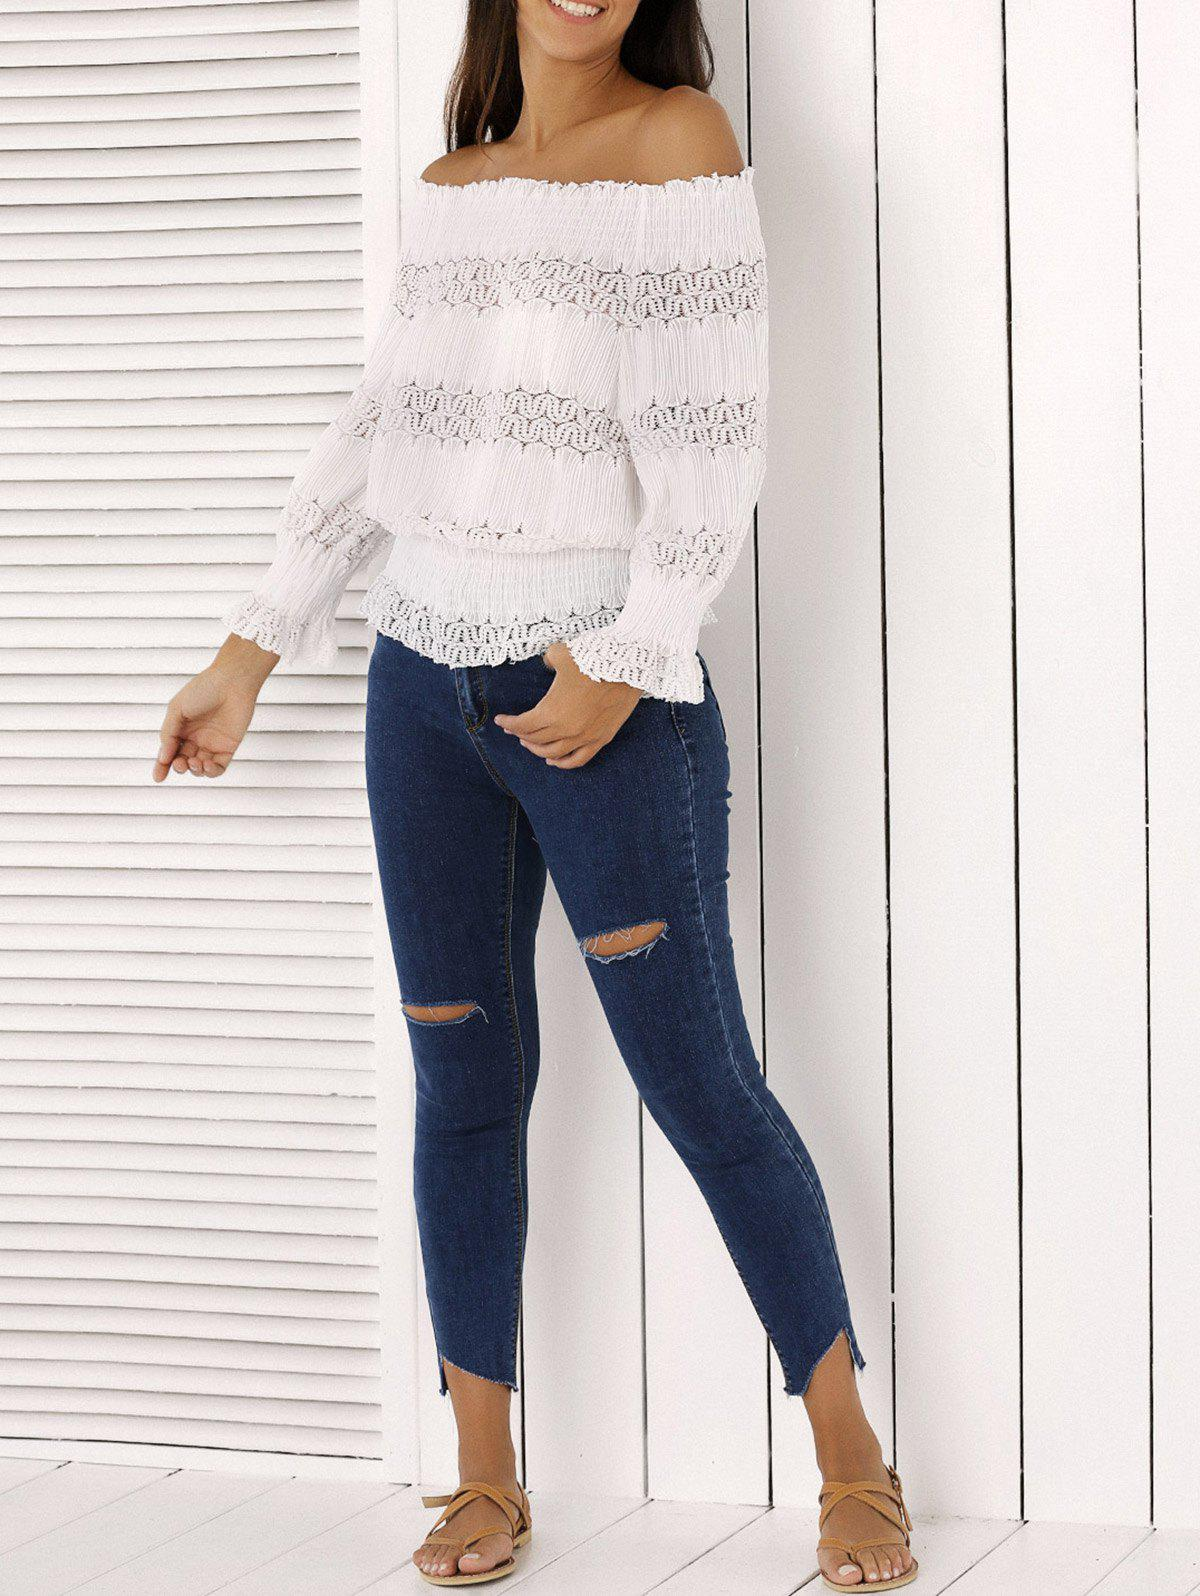 Discount Fashion Off The Shoulder Peplum Top and Distressed Skinny Jeans